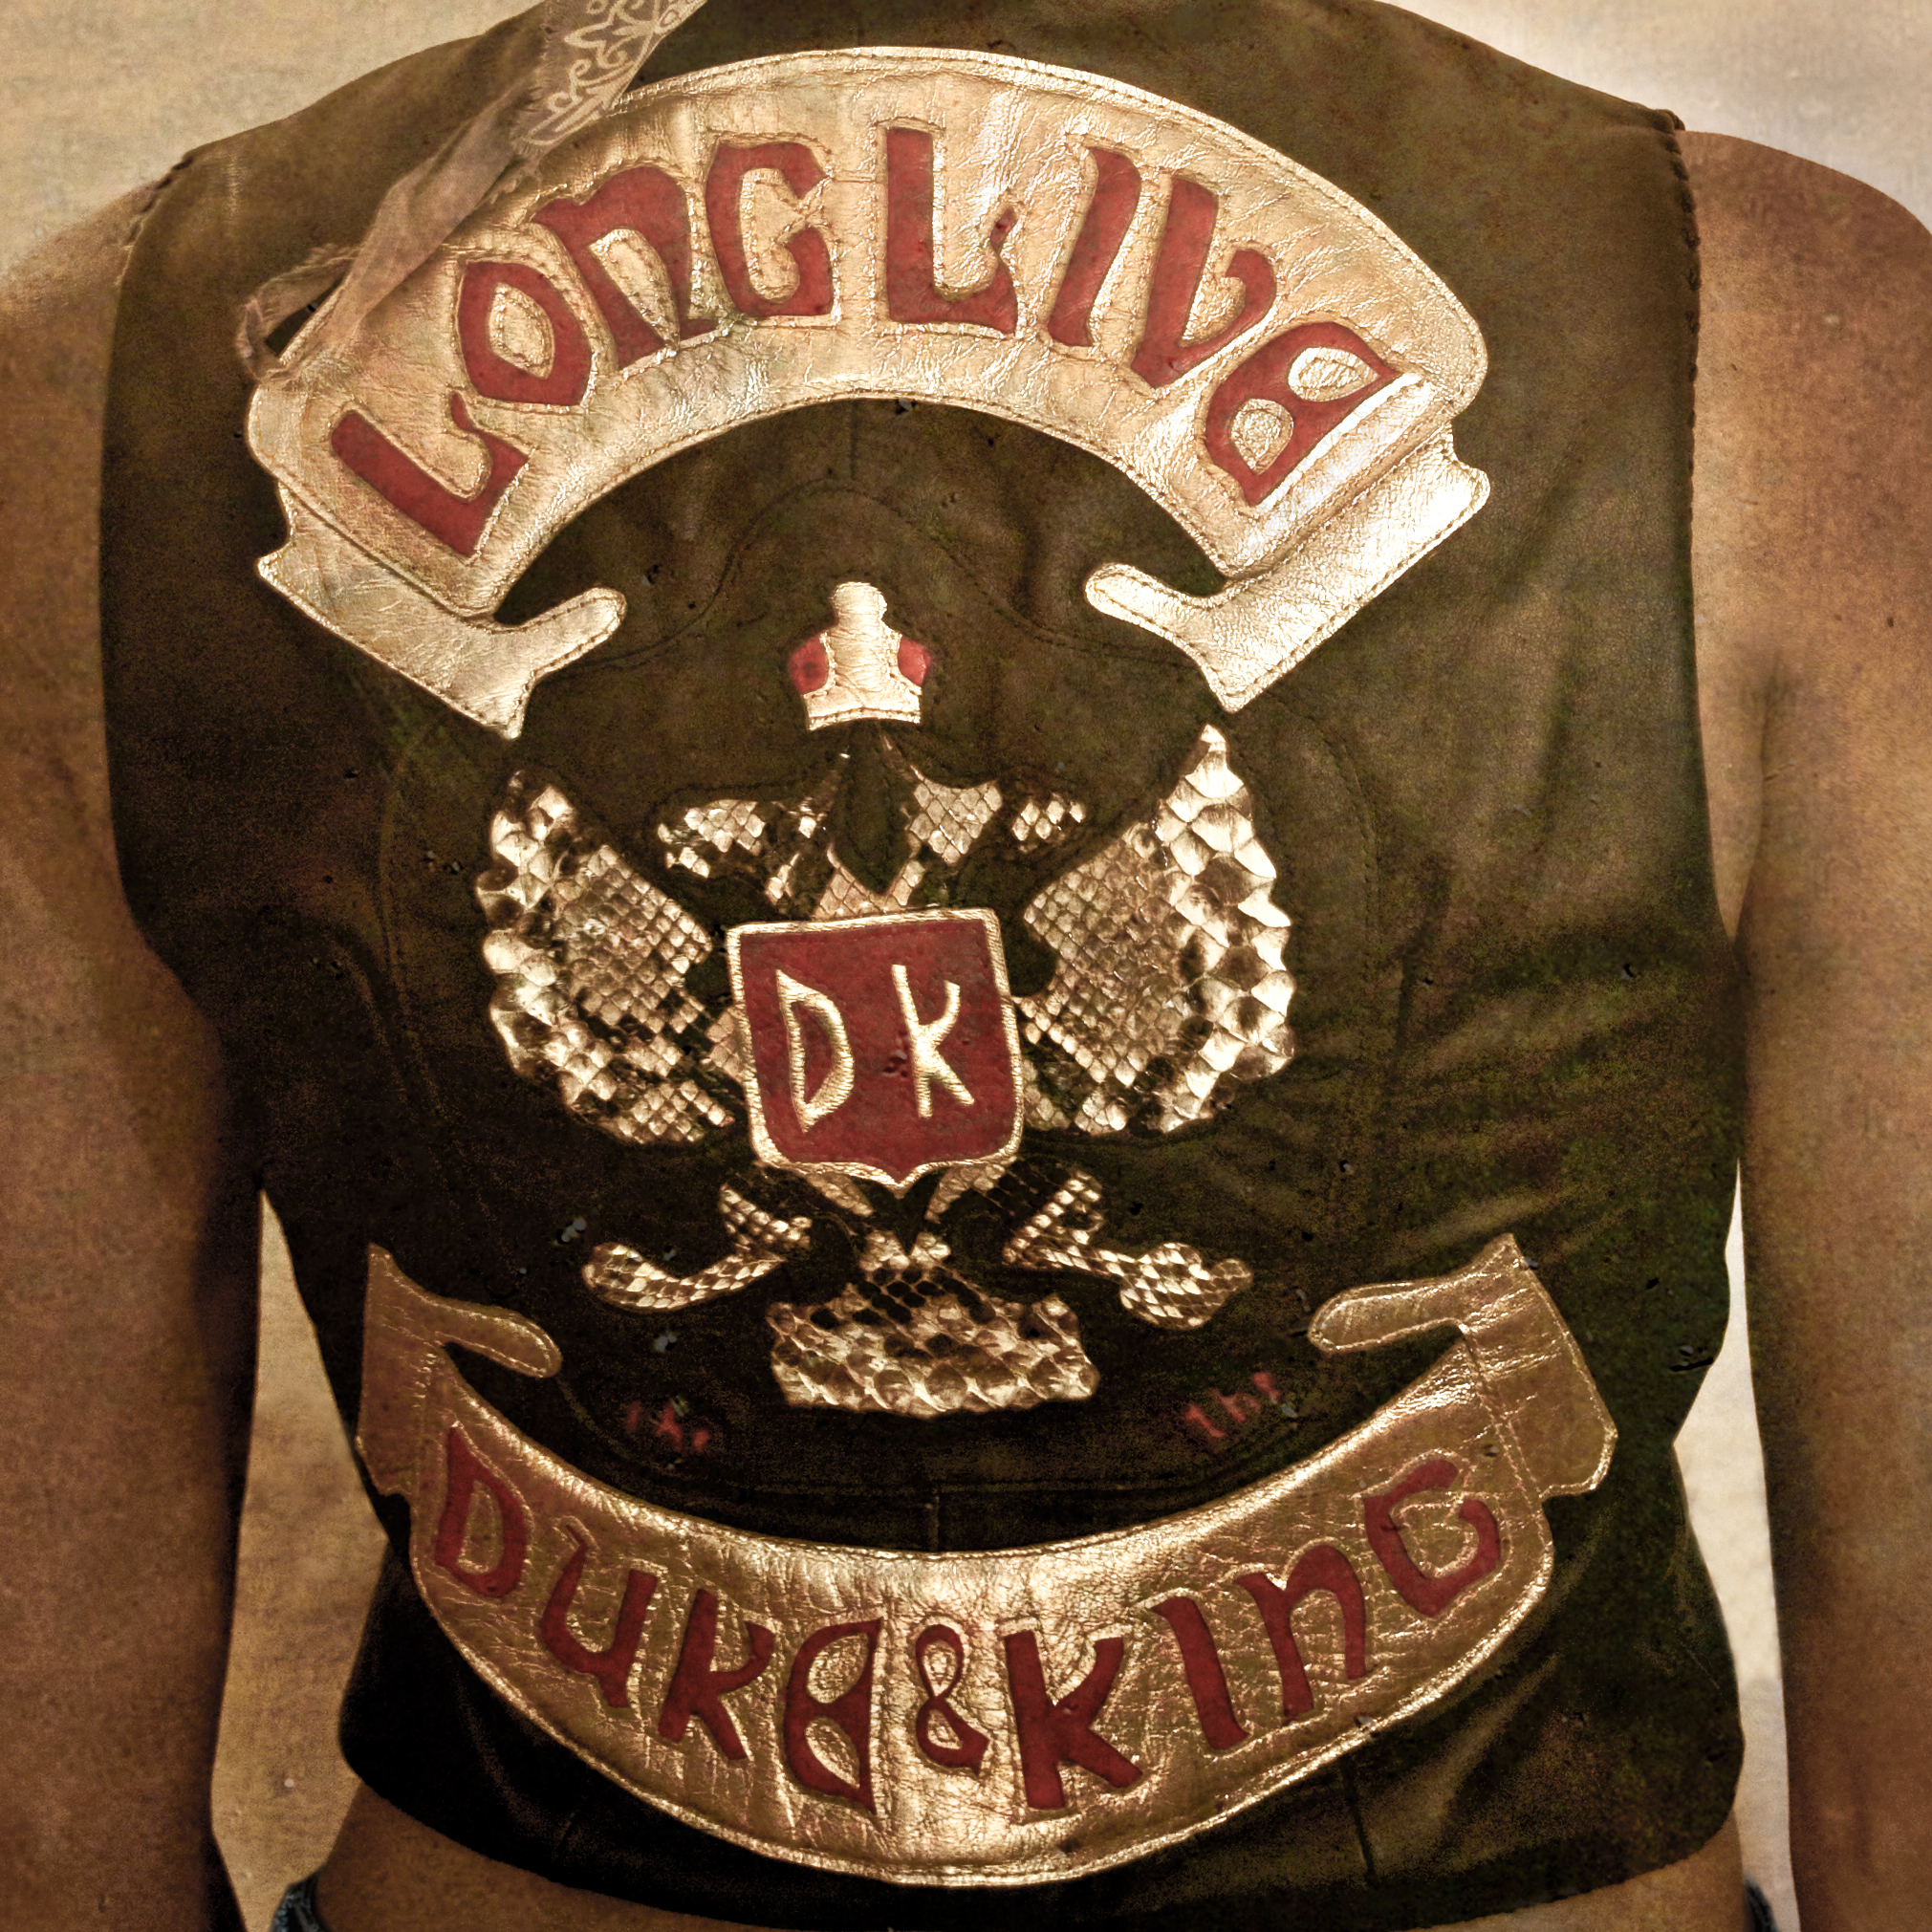 Long Live The Duke & The King Instrumentals